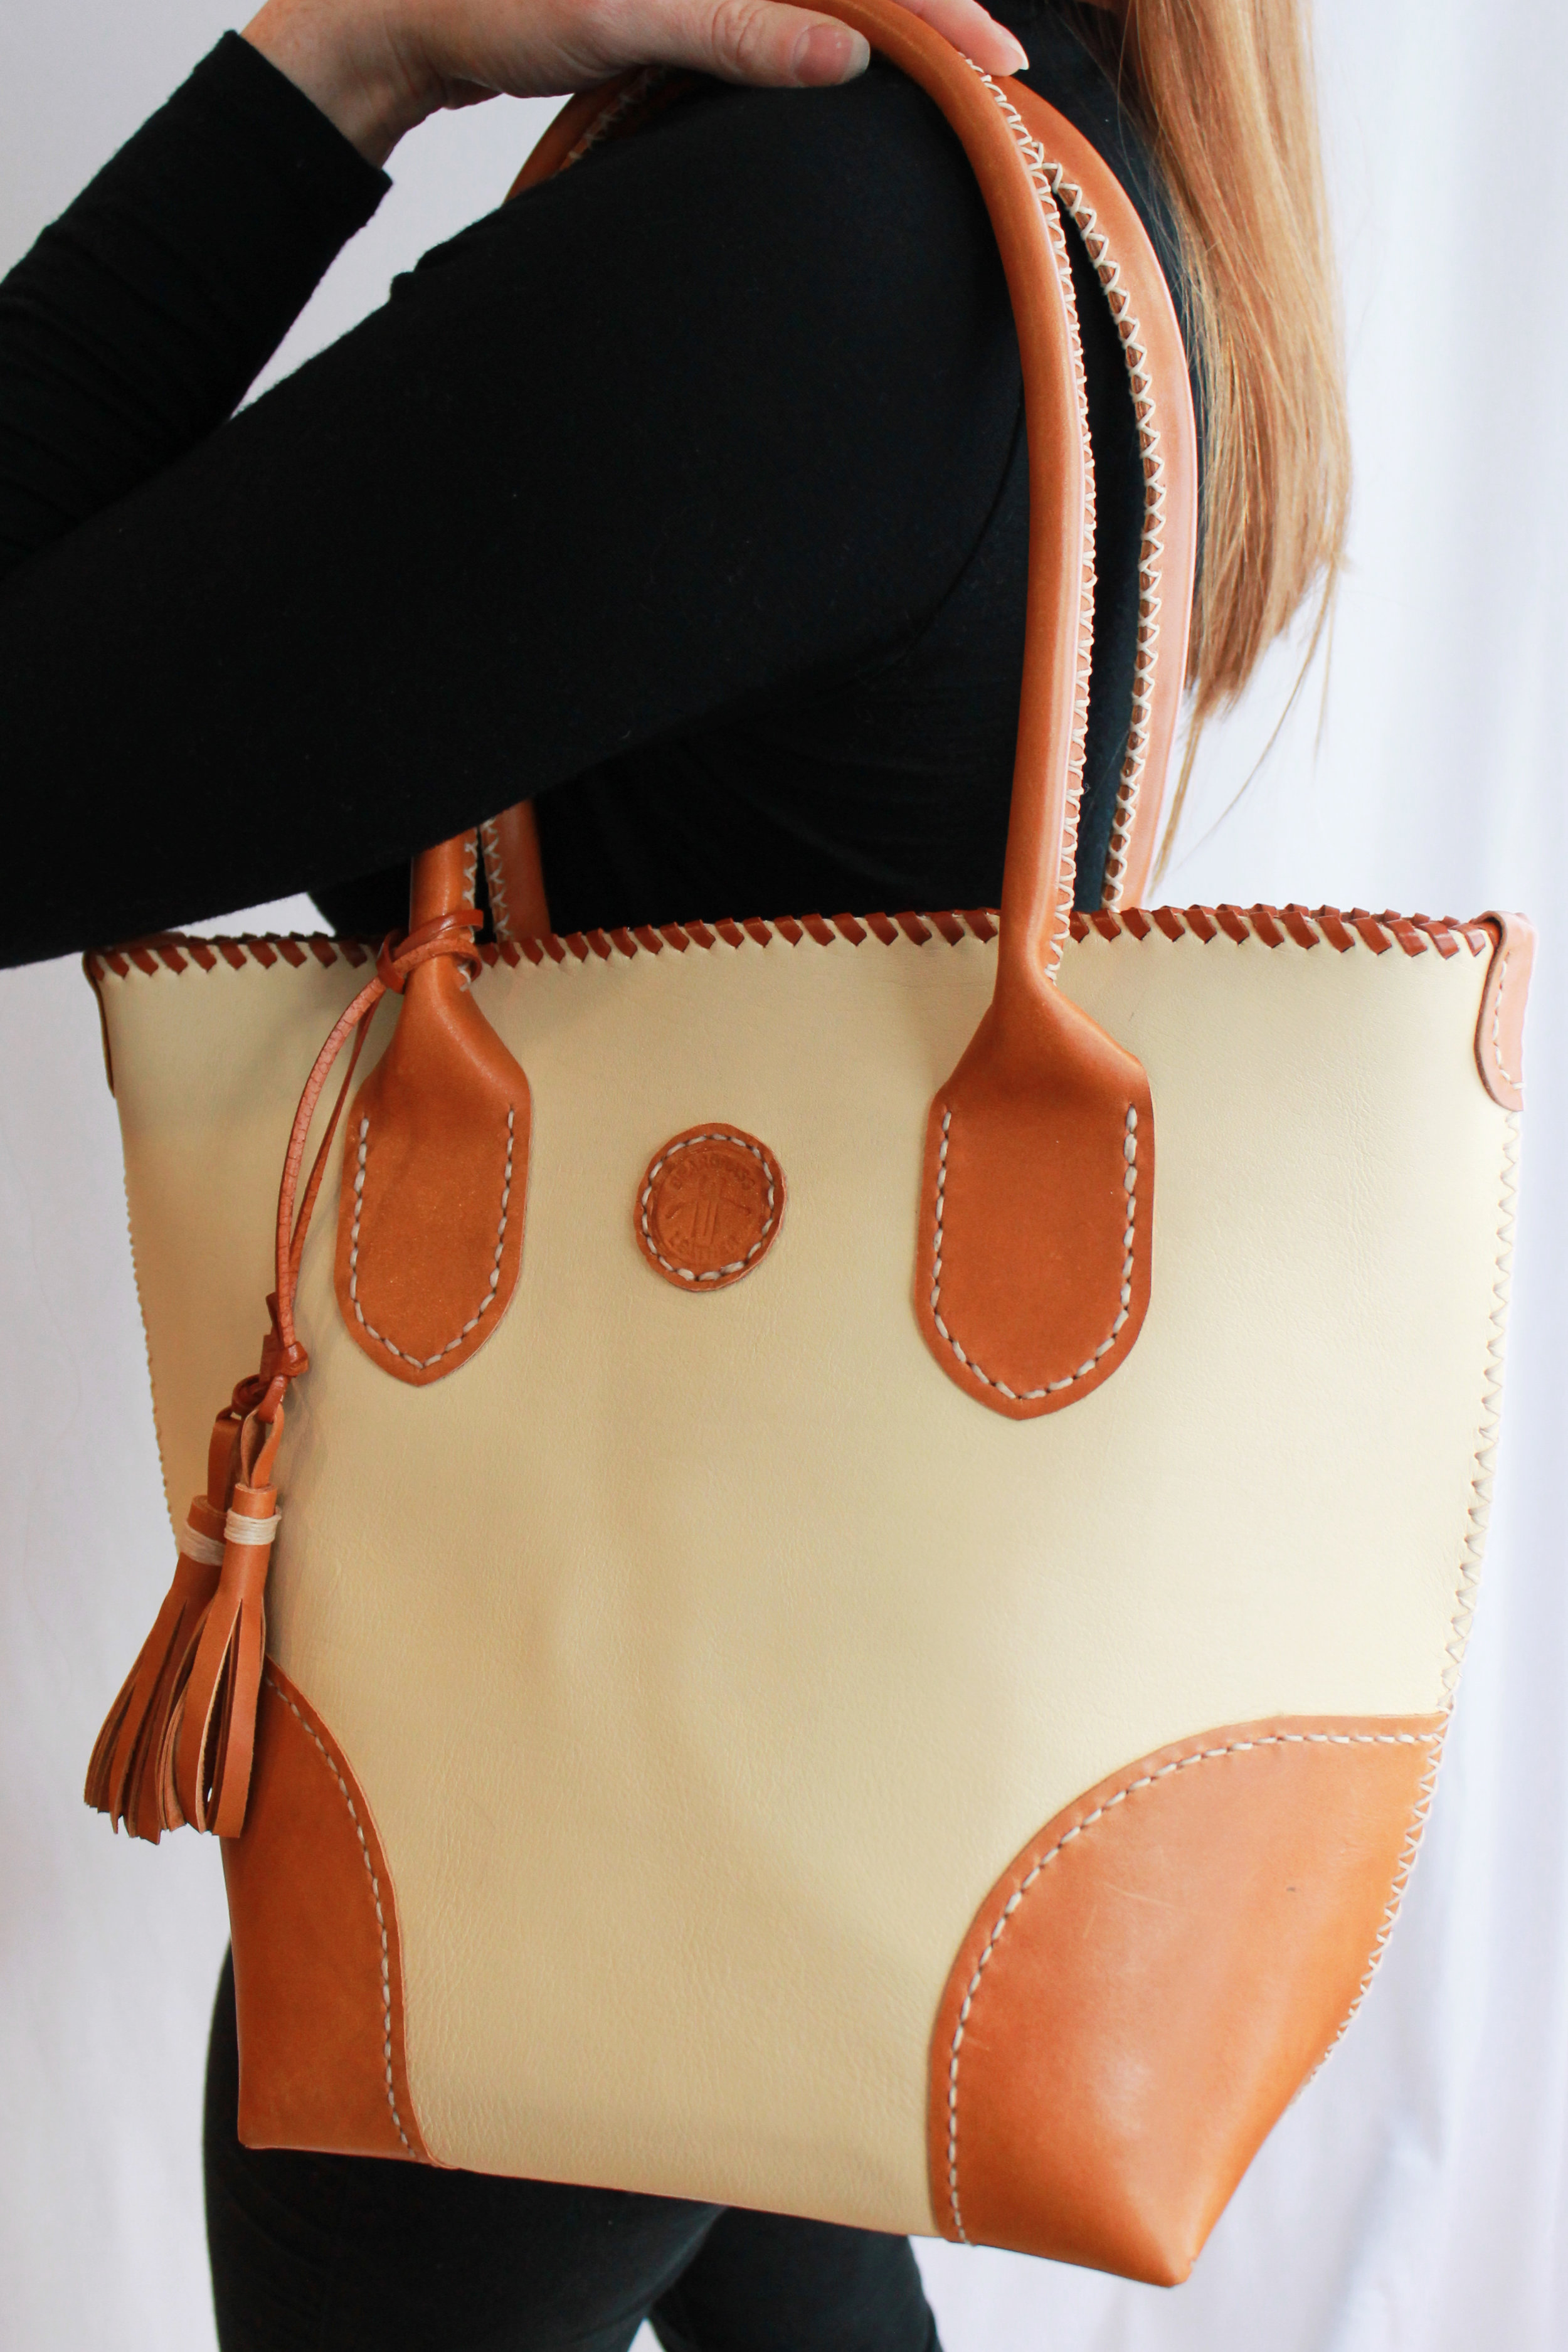 The Lakeside Rambler has amazing cream colored, soft full grain leather with firm caramel corners, strap, tassel, and lace.